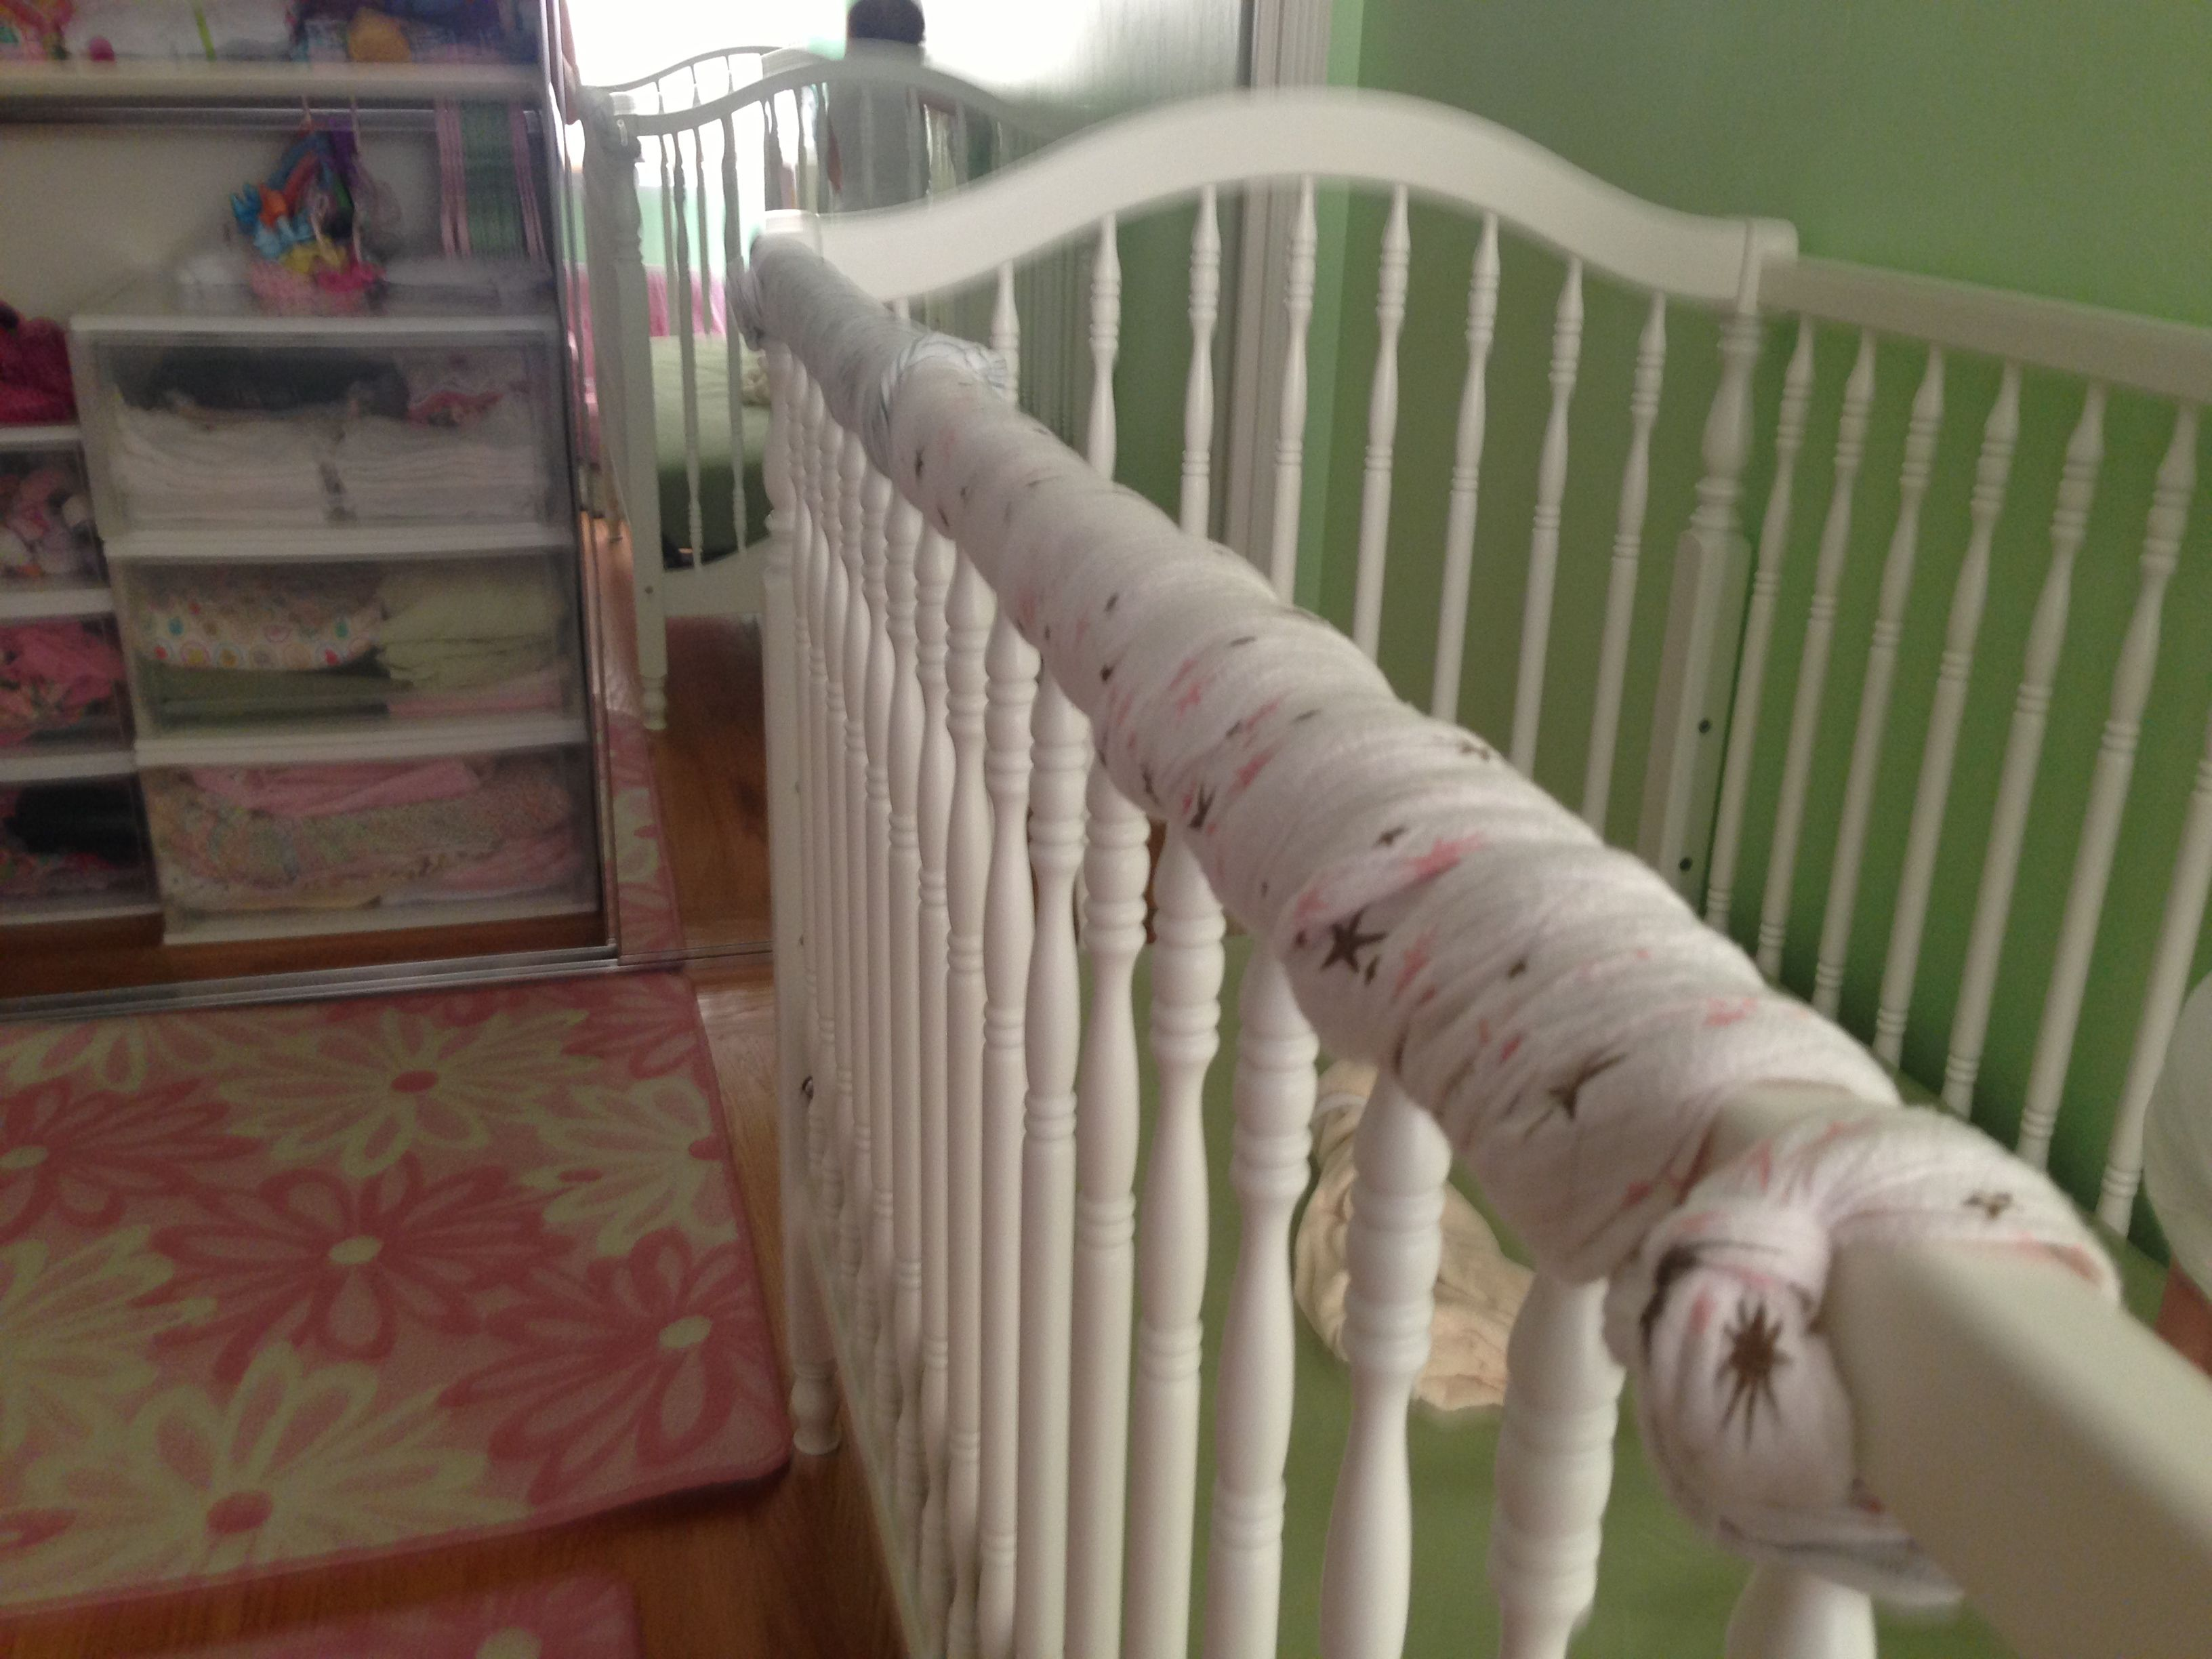 Safest brand of crib for babies - Baby Cribs Homemade Use A Swaddling Blanket As A Diy Crib Rail Teething Guard Http